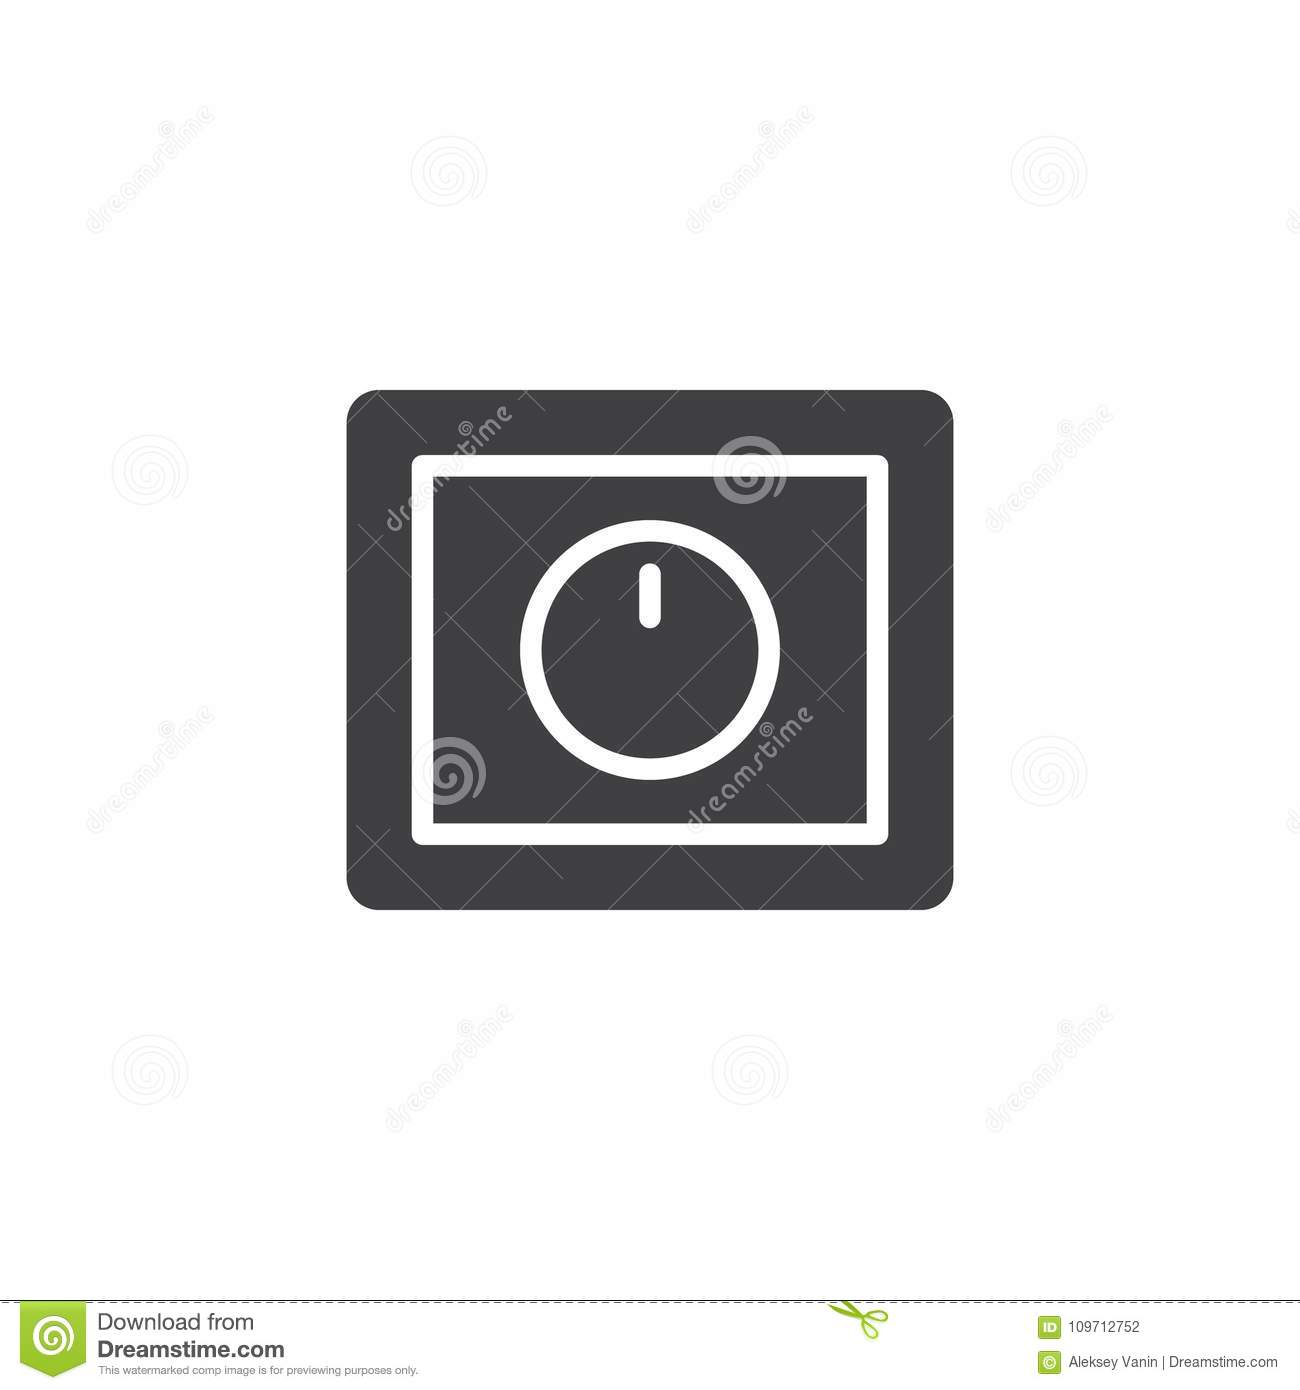 Light Dimmer Switch Icon Vector Stock Vector - Illustration of ...